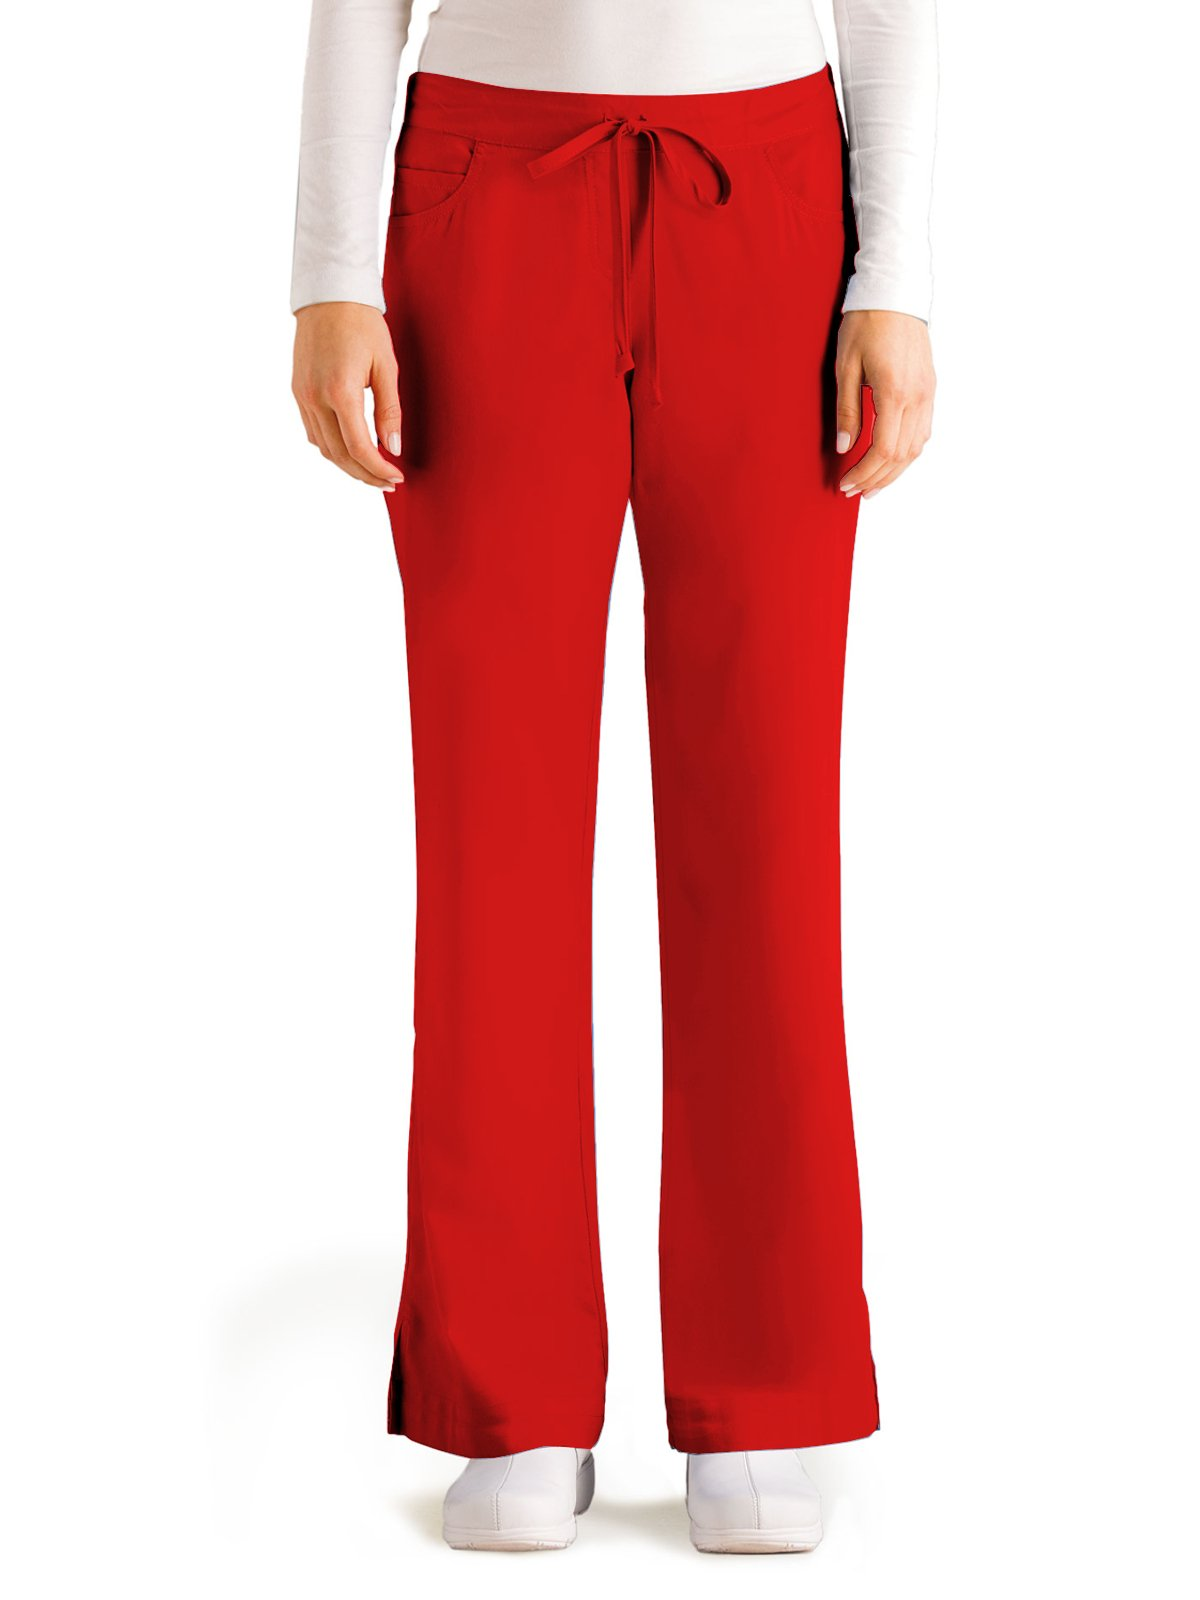 Grey's Anatomy 4232 Tie Front Pant Scarlet Red L